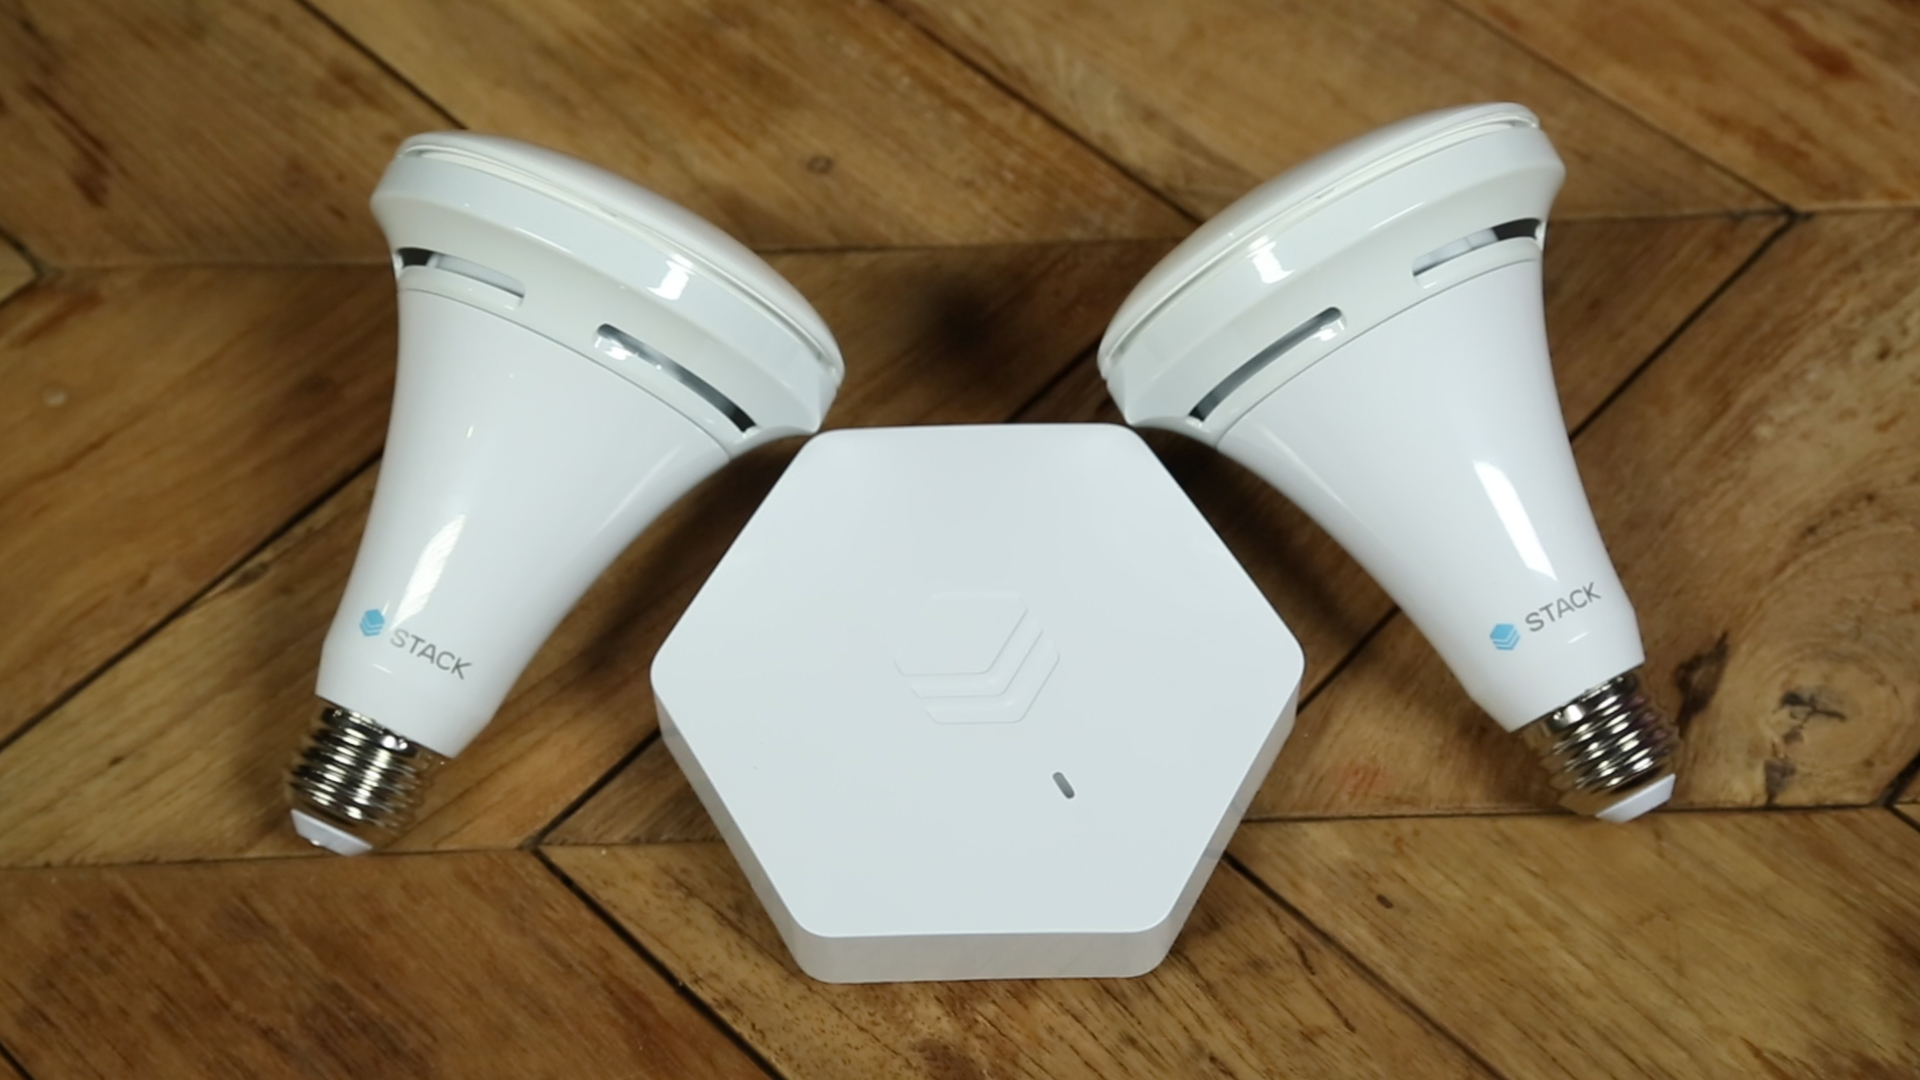 Video: Stack's sensor-enabled smart bulbs left us impressed